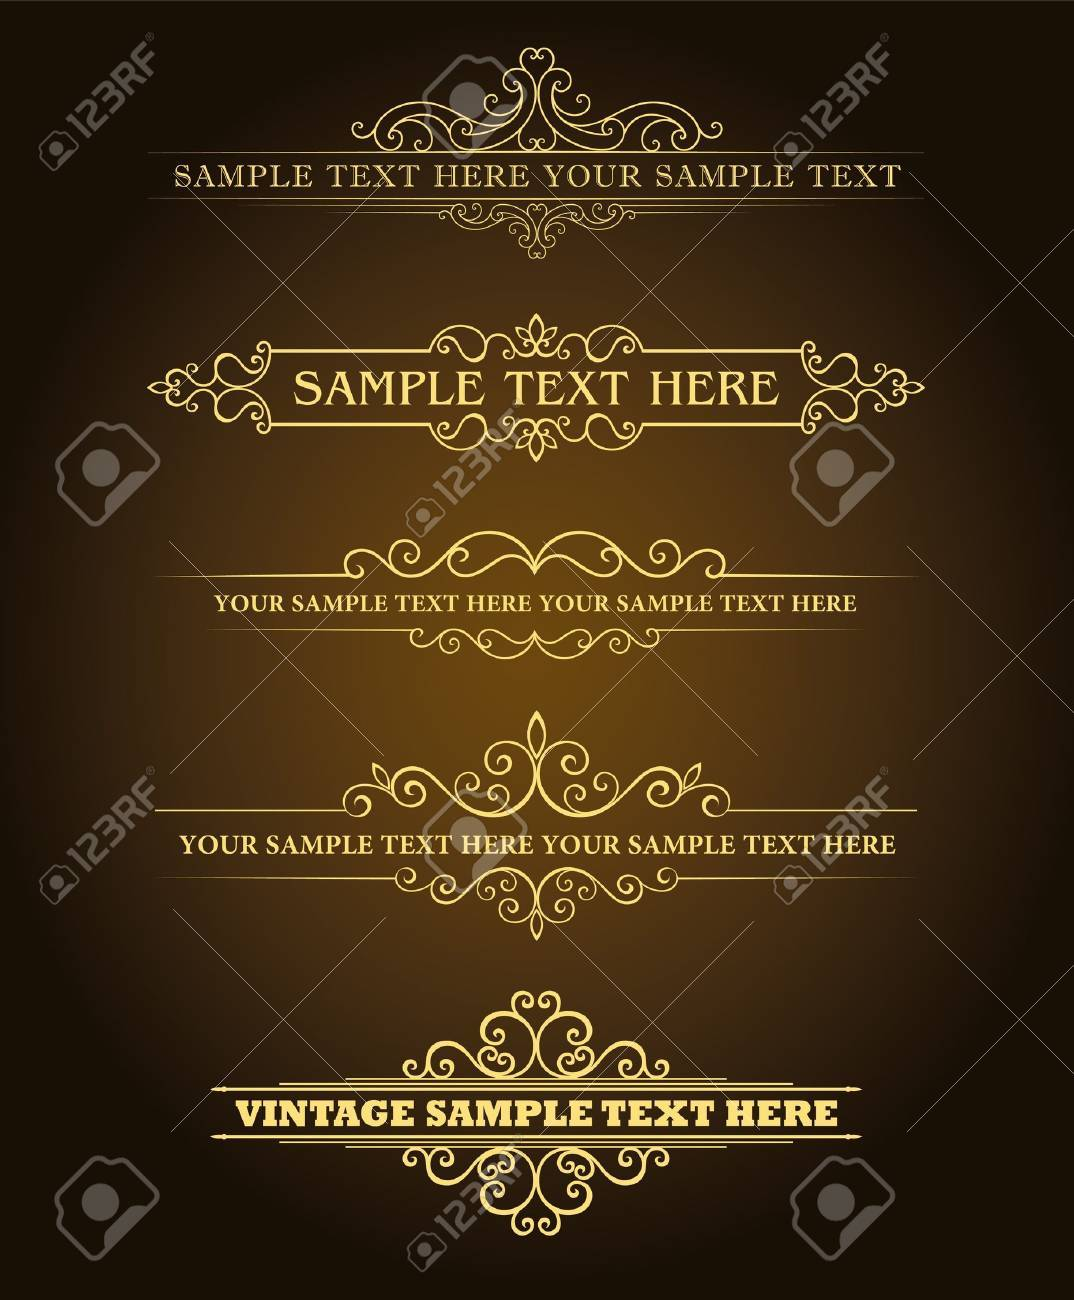 Calligraphic old elements vintage decor, vector Stock Vector - 12379291